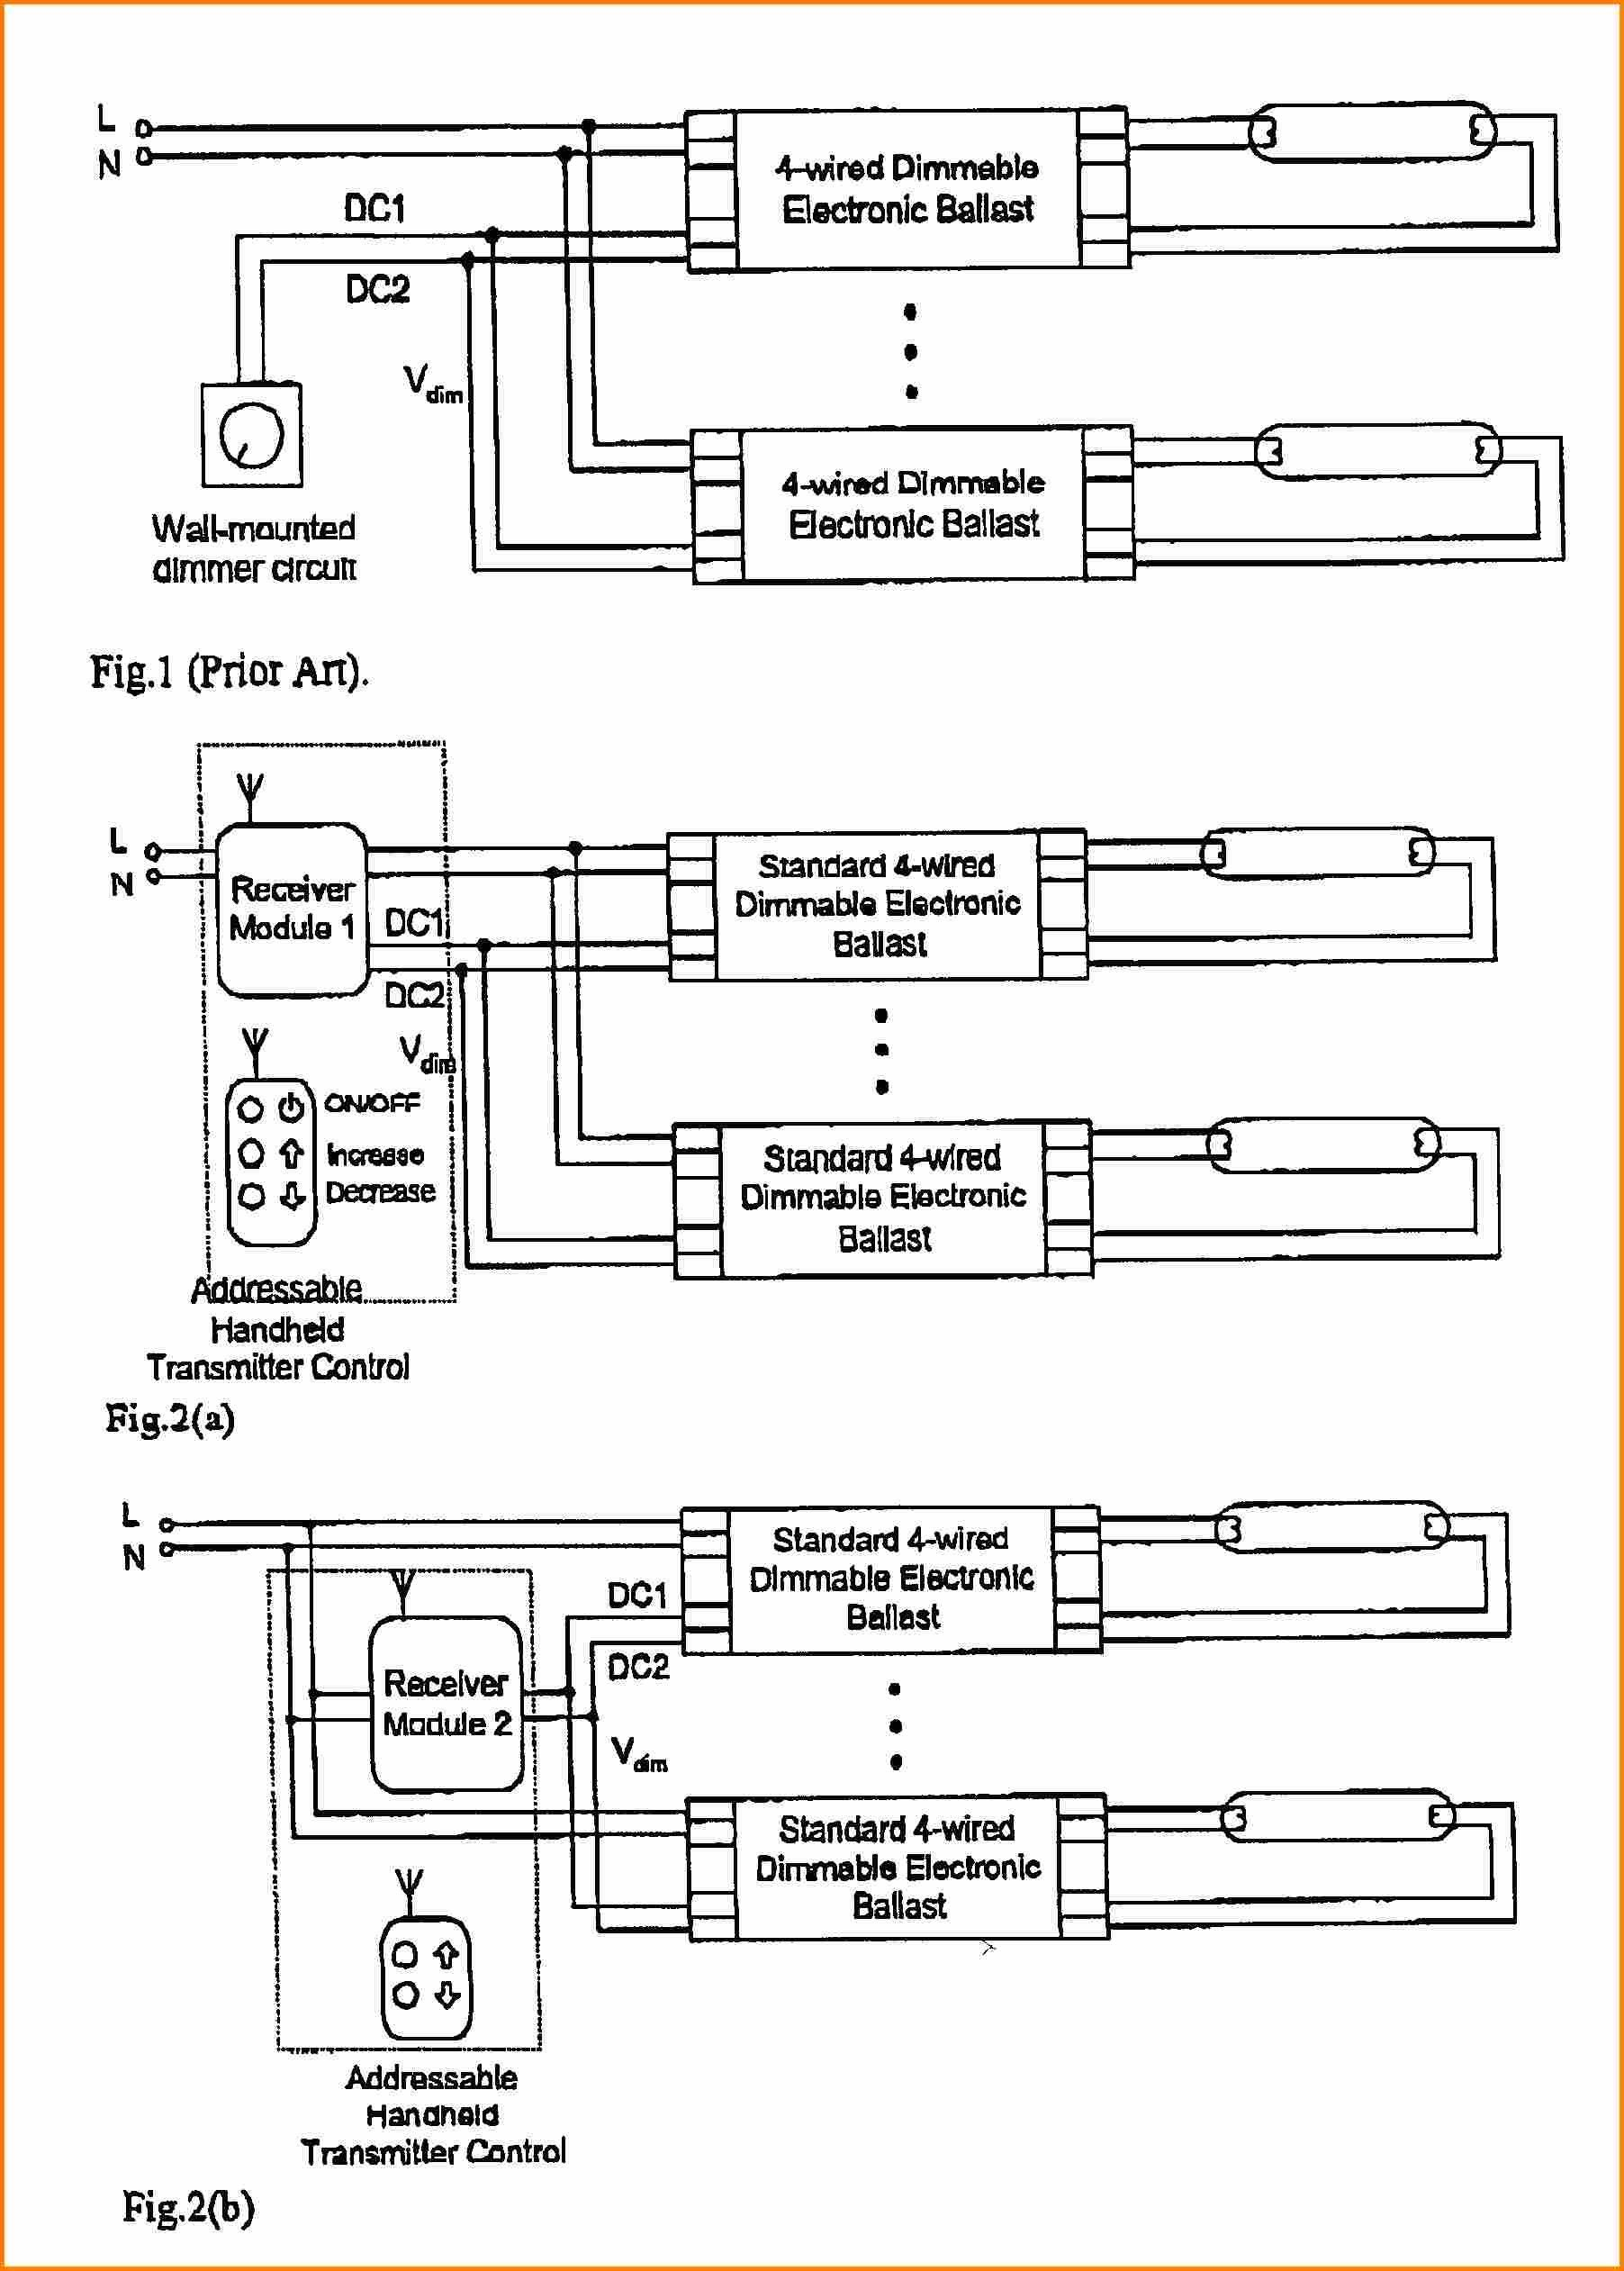 [DIAGRAM_38EU]  3 Bulb T8 Ballast Wiring Diagram For Free Download -Gas Rc Airplane Wiring  Diagram | Begeboy Wiring Diagram Source | 3 L T8 Ballast Wiring Diagram Free Picture |  | Begeboy Wiring Diagram Source